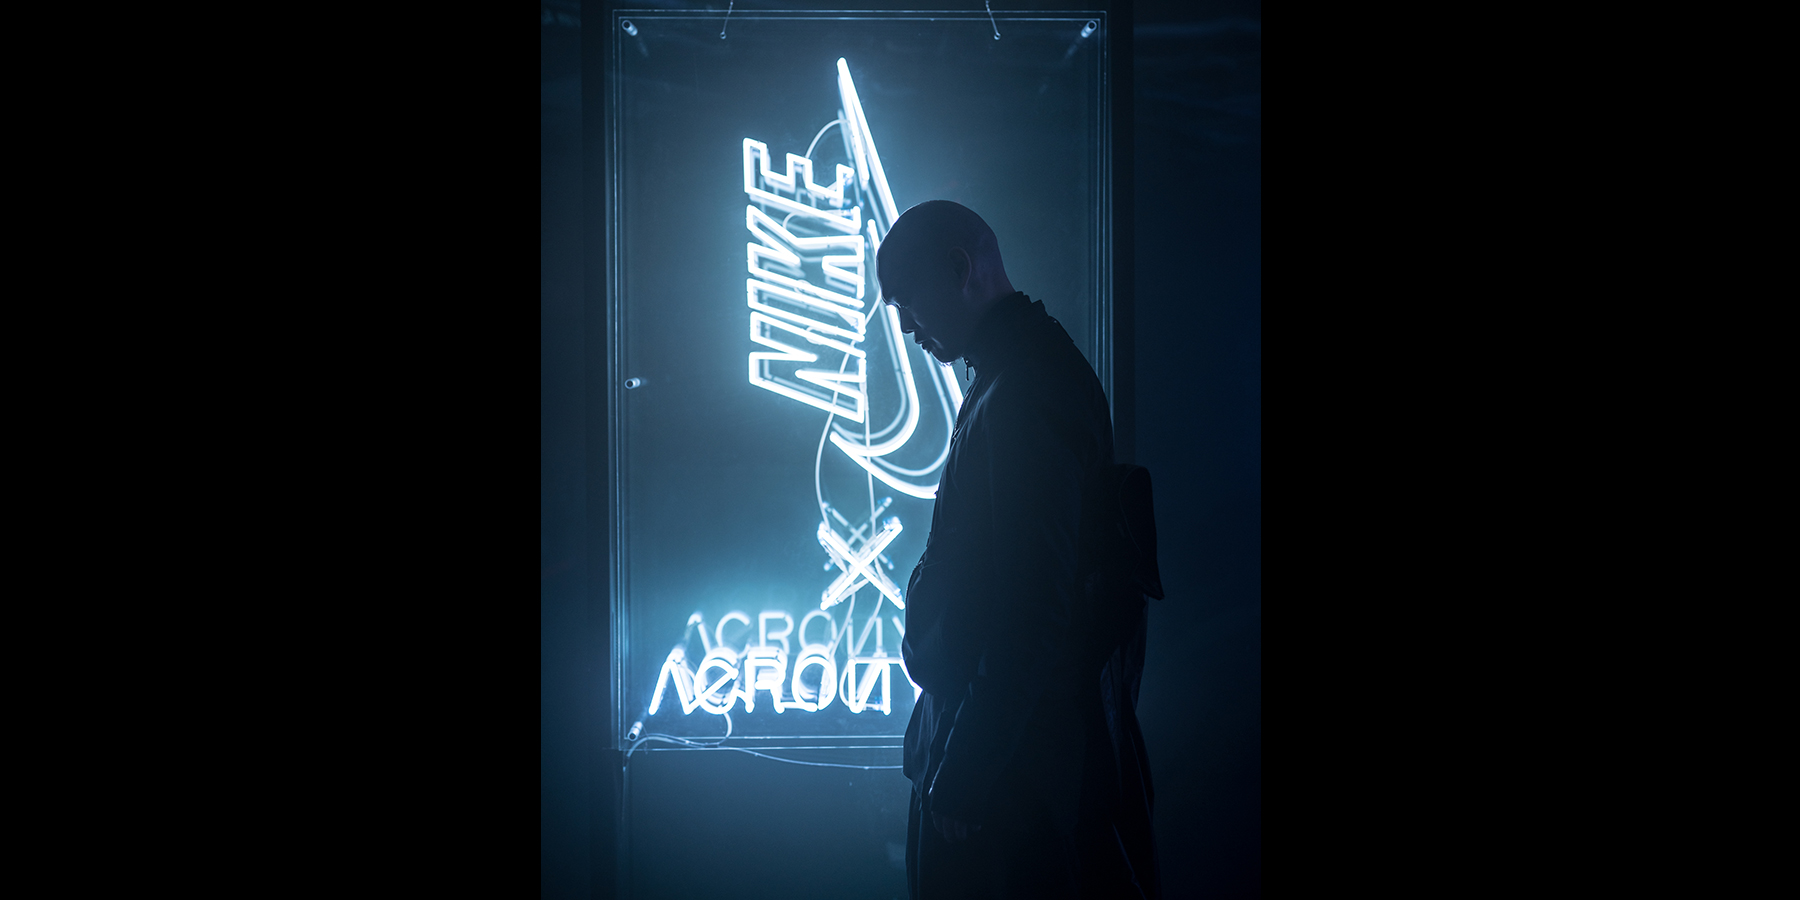 NikeLab Shanghai x ACRONYM® AF1 Downtown Berlin Launch - Errolson Hugh Sign by Jennifer Bin